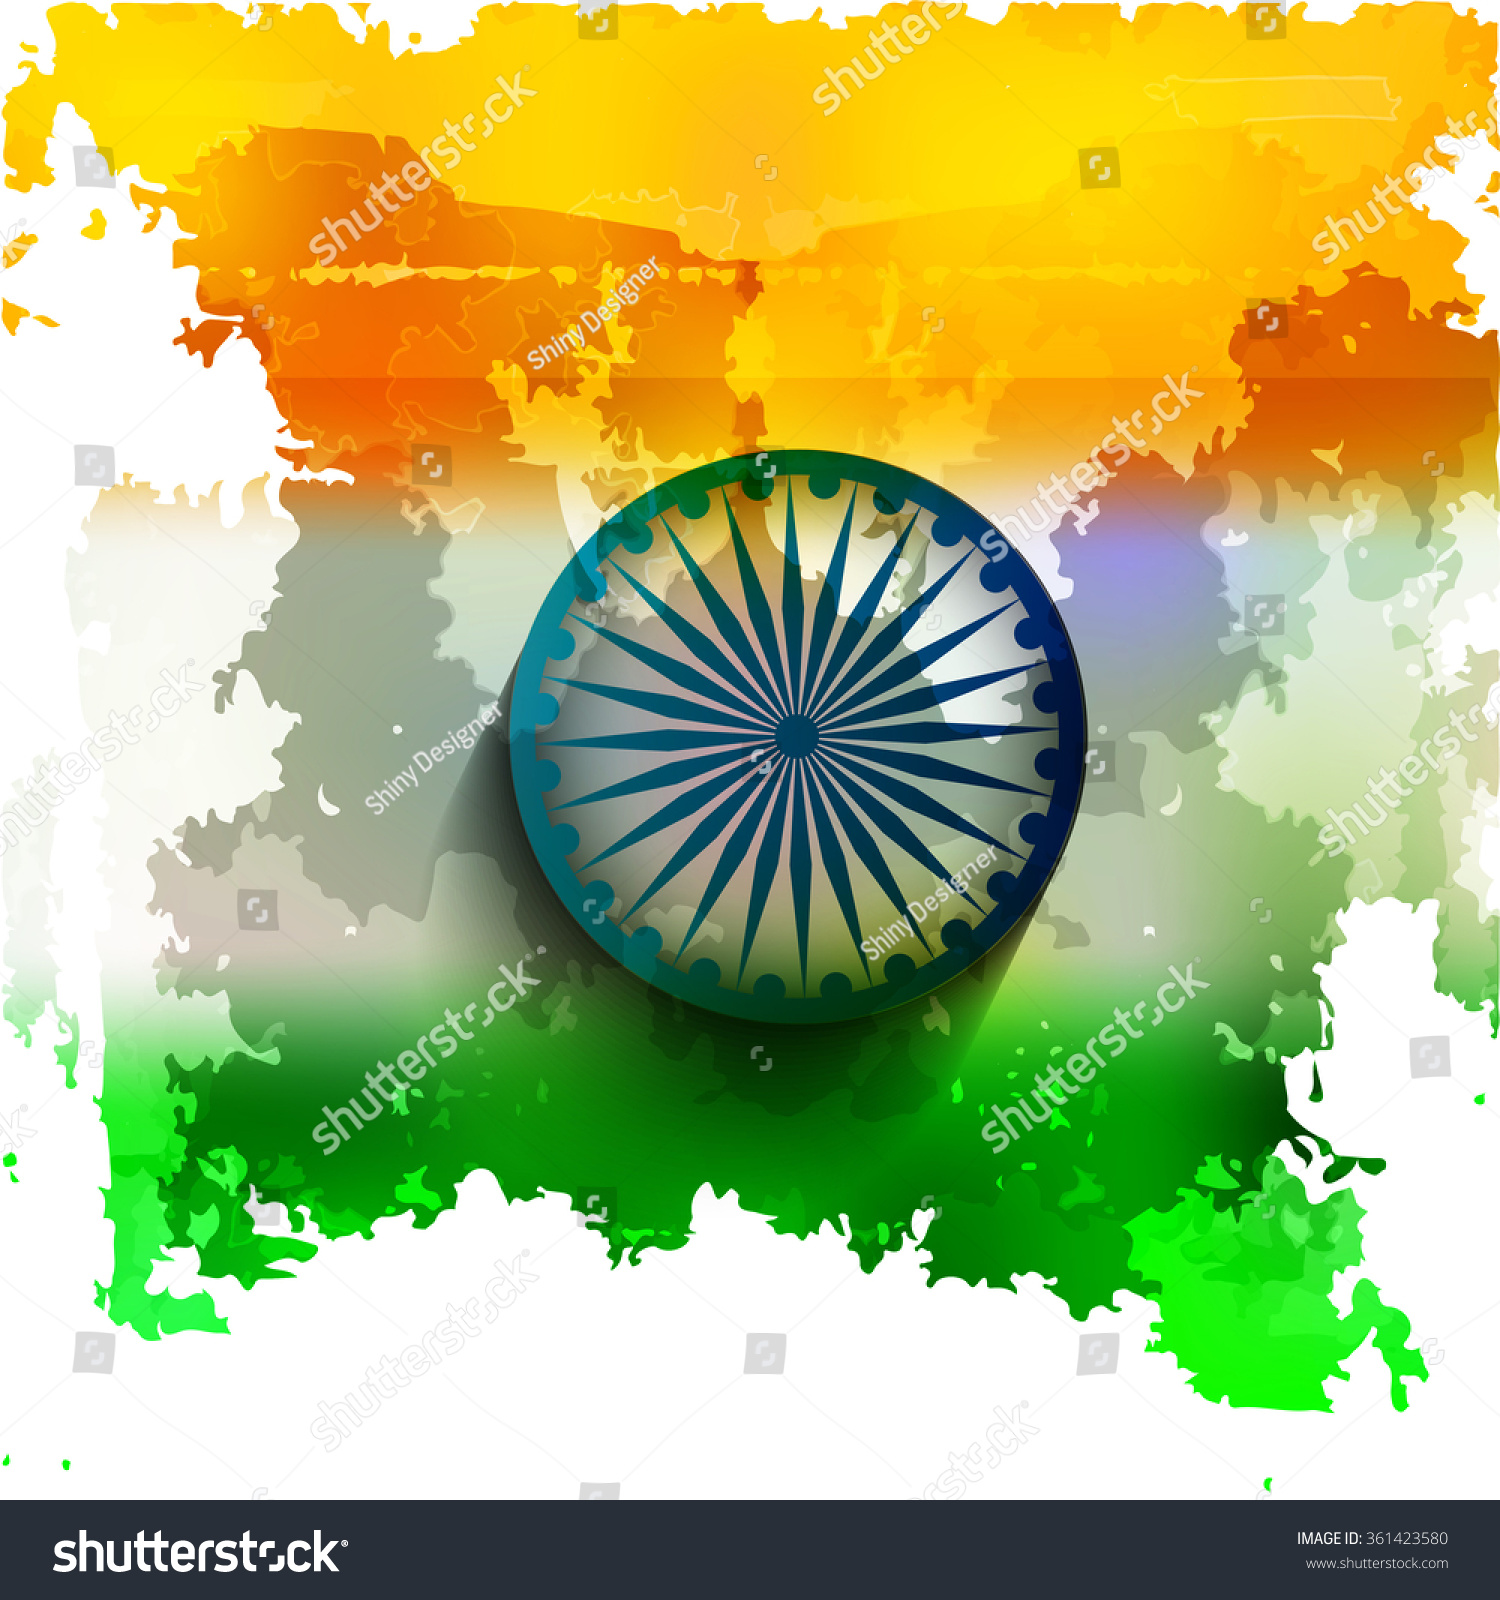 Textured Indian Flag Design Vector Stock Vector (Royalty Free) 361423580